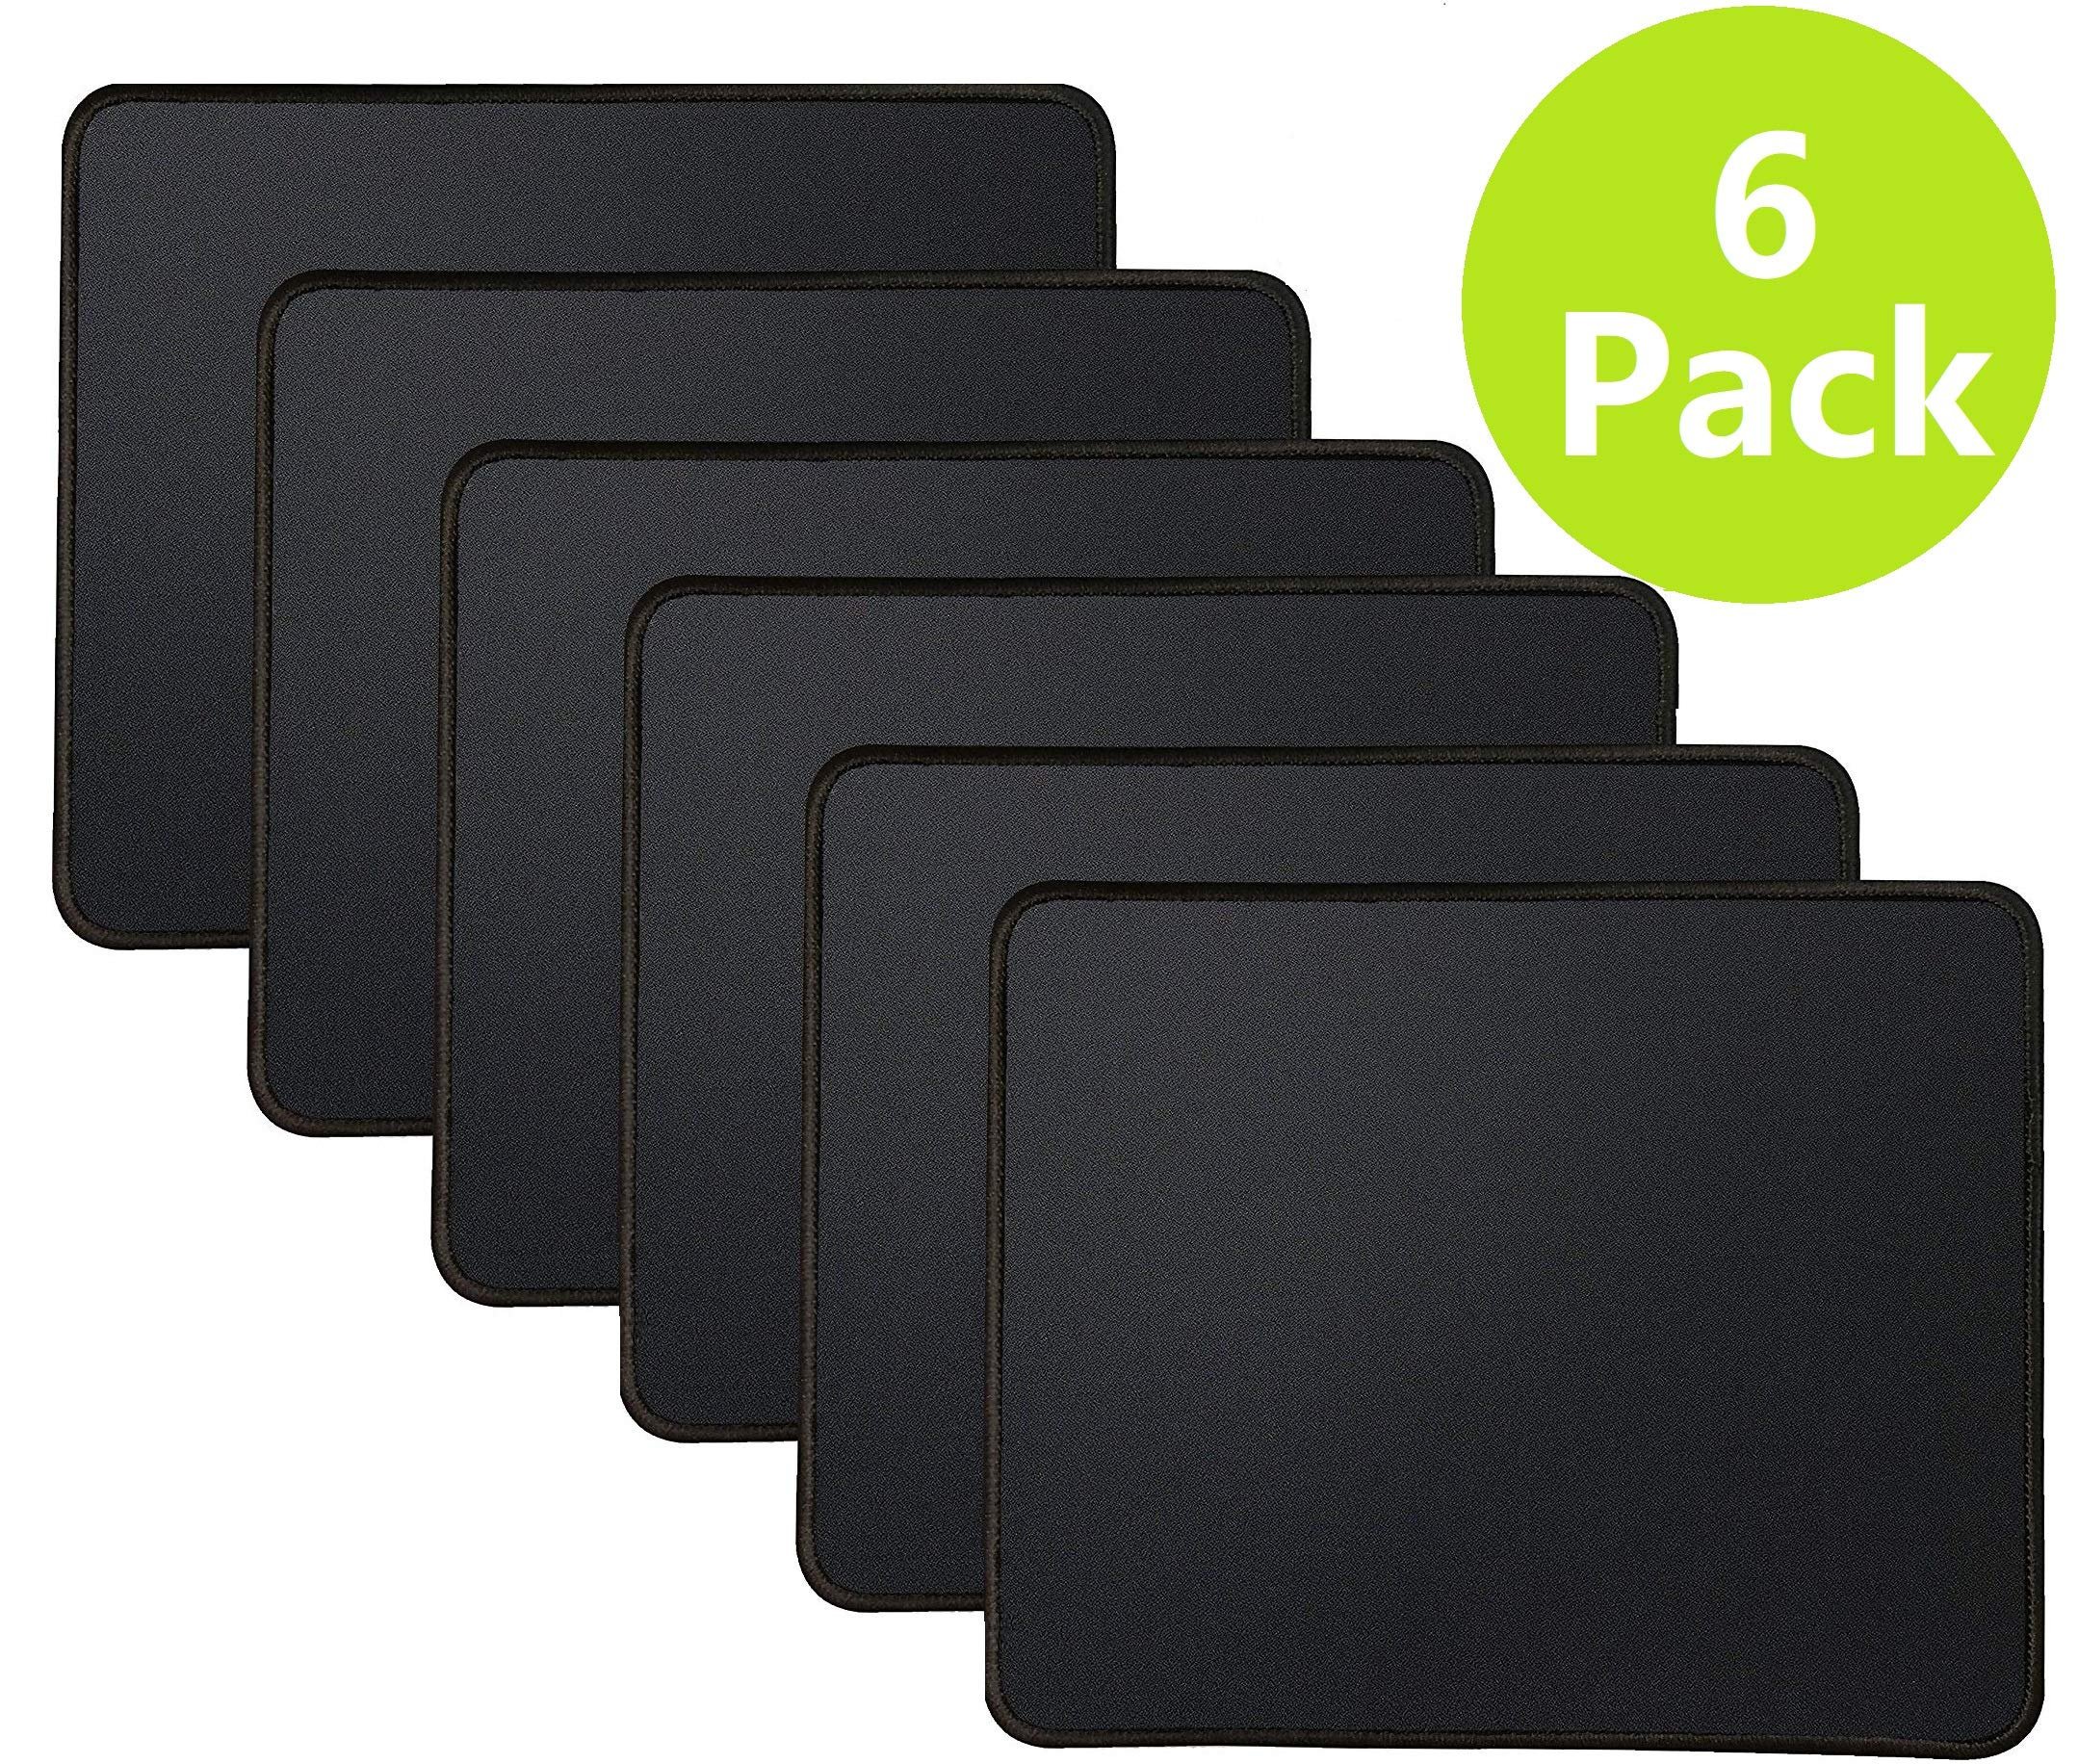 6 Mouse Pad Bundle Stitched Edges Premium Waterproof Gaming Mouse Mat Pad, Extends Battery Life Non-Slip Rubber Base Thick Black Mousepad for Laptop Computer & PC, 11 x 8.7 inch, Black Razer-Pack of 6 by TONOS